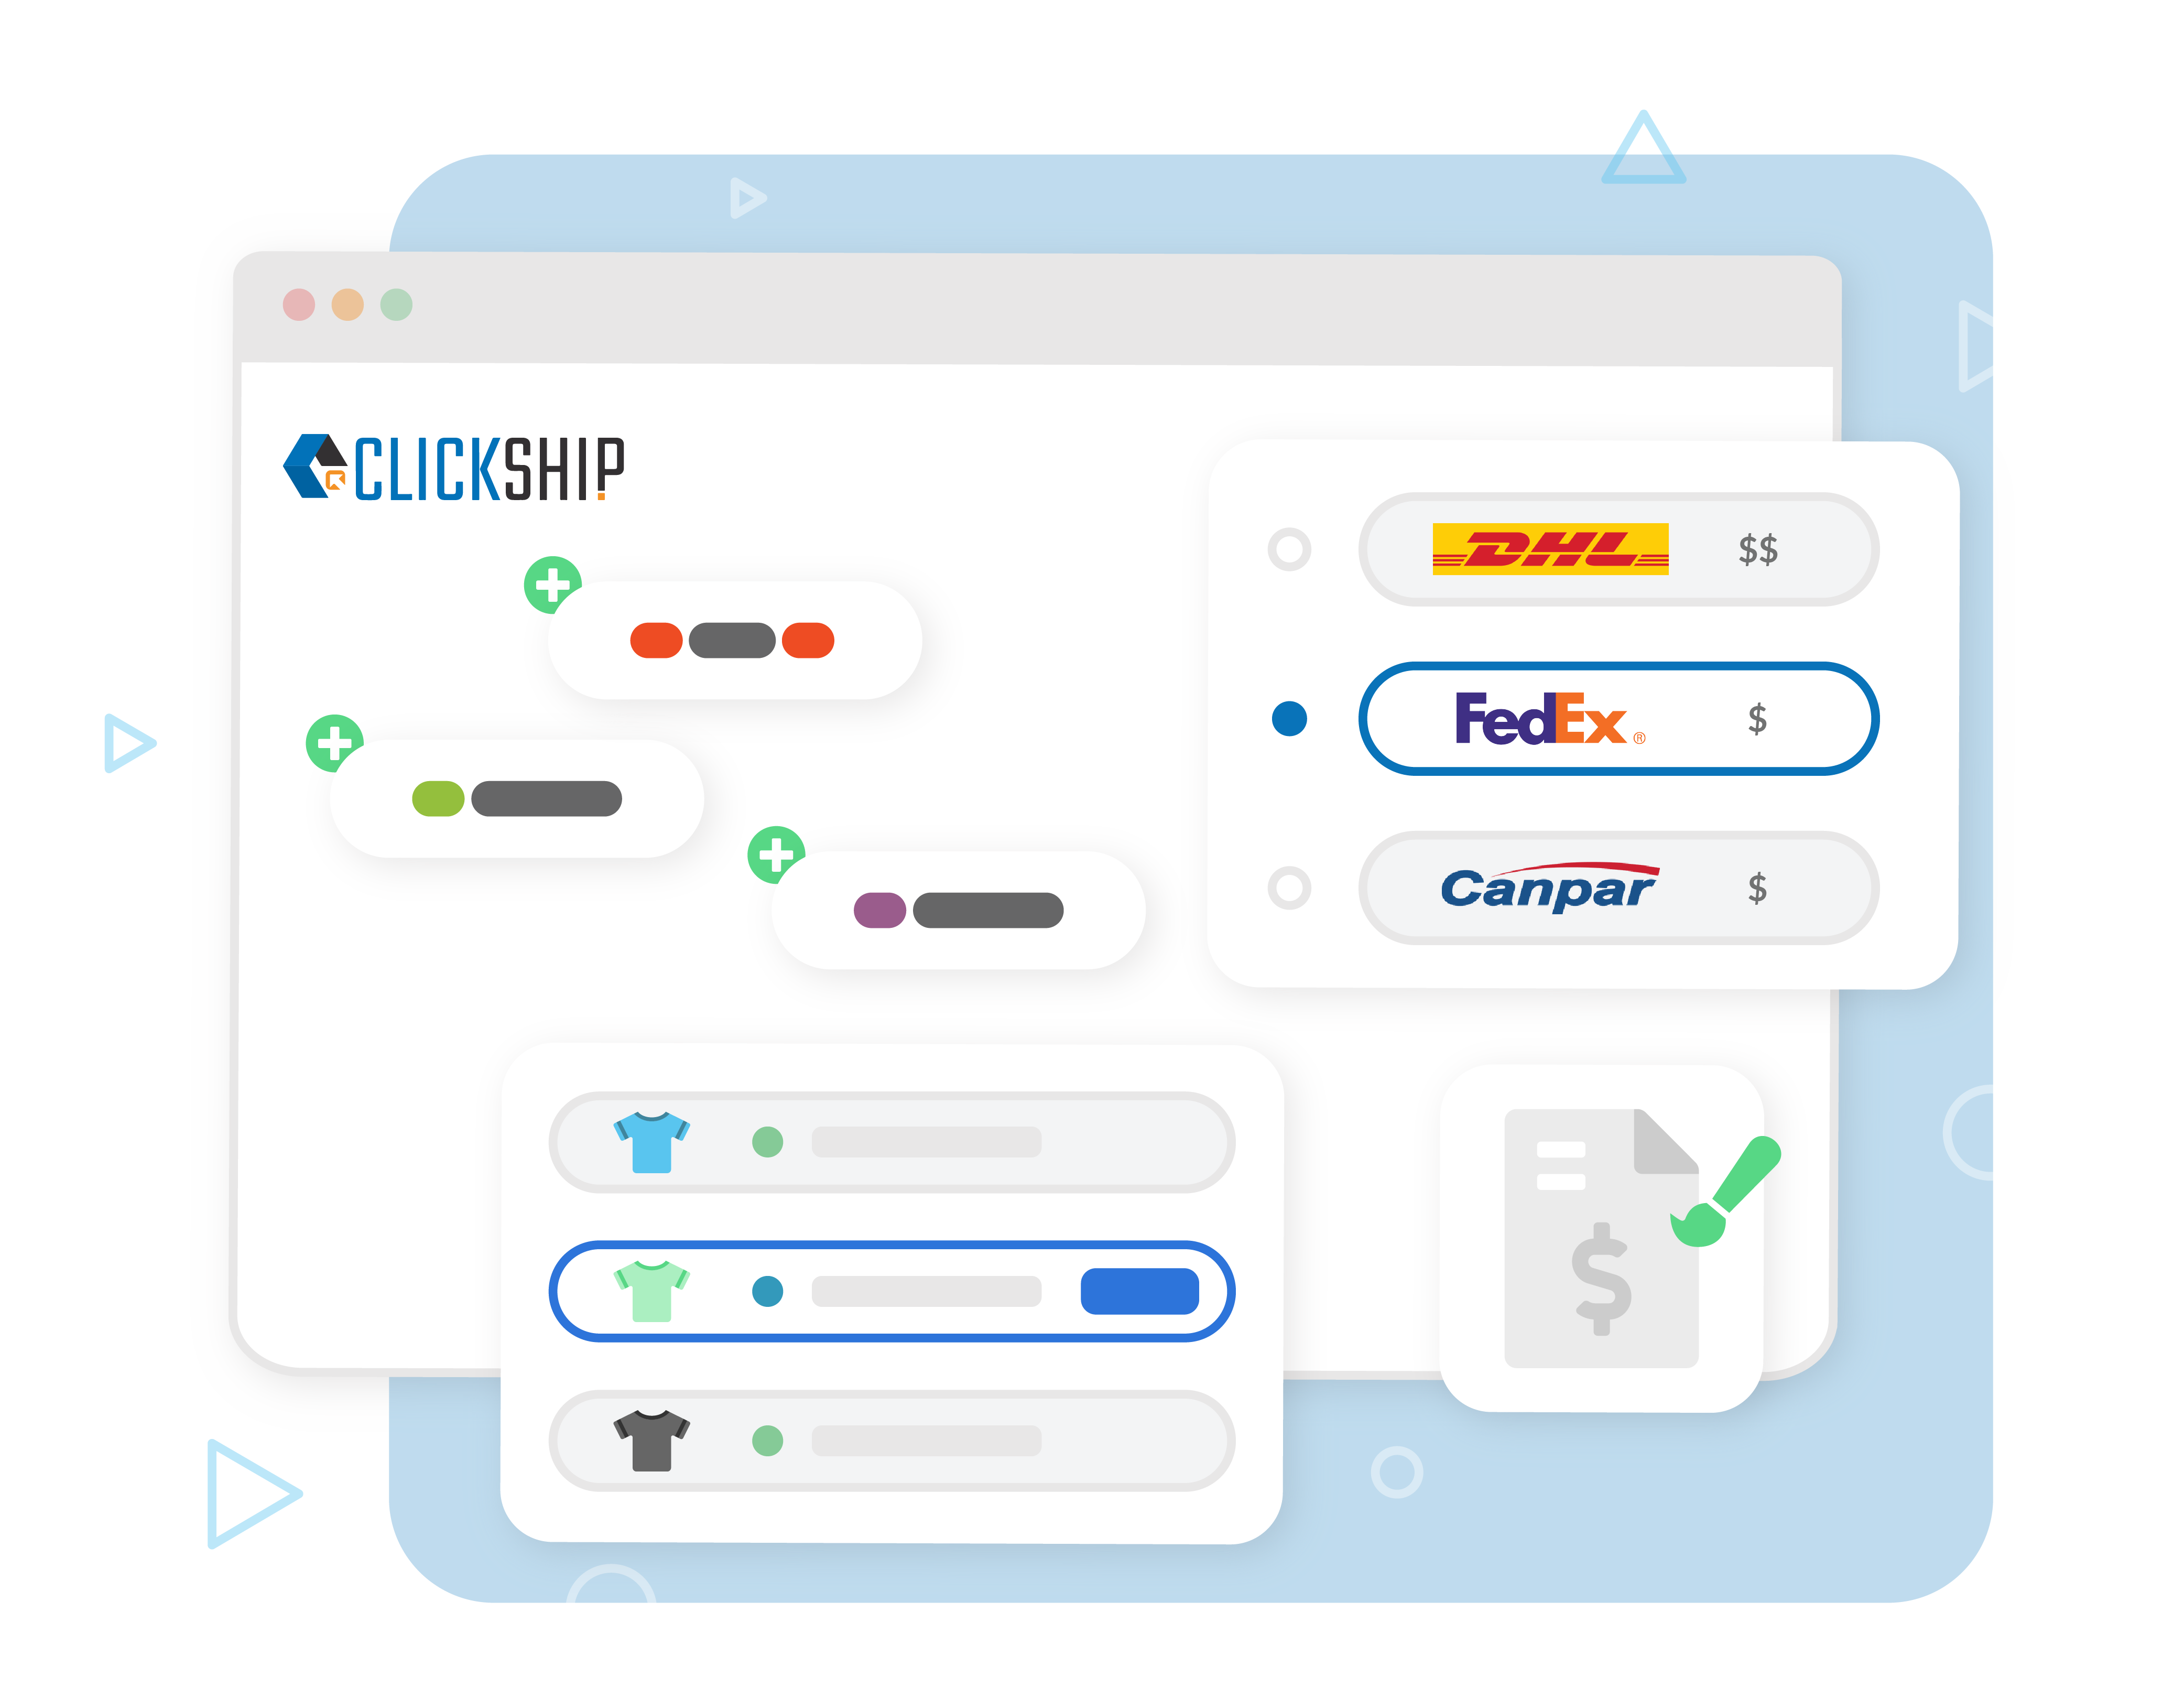 Images of Key Features for ClickShip